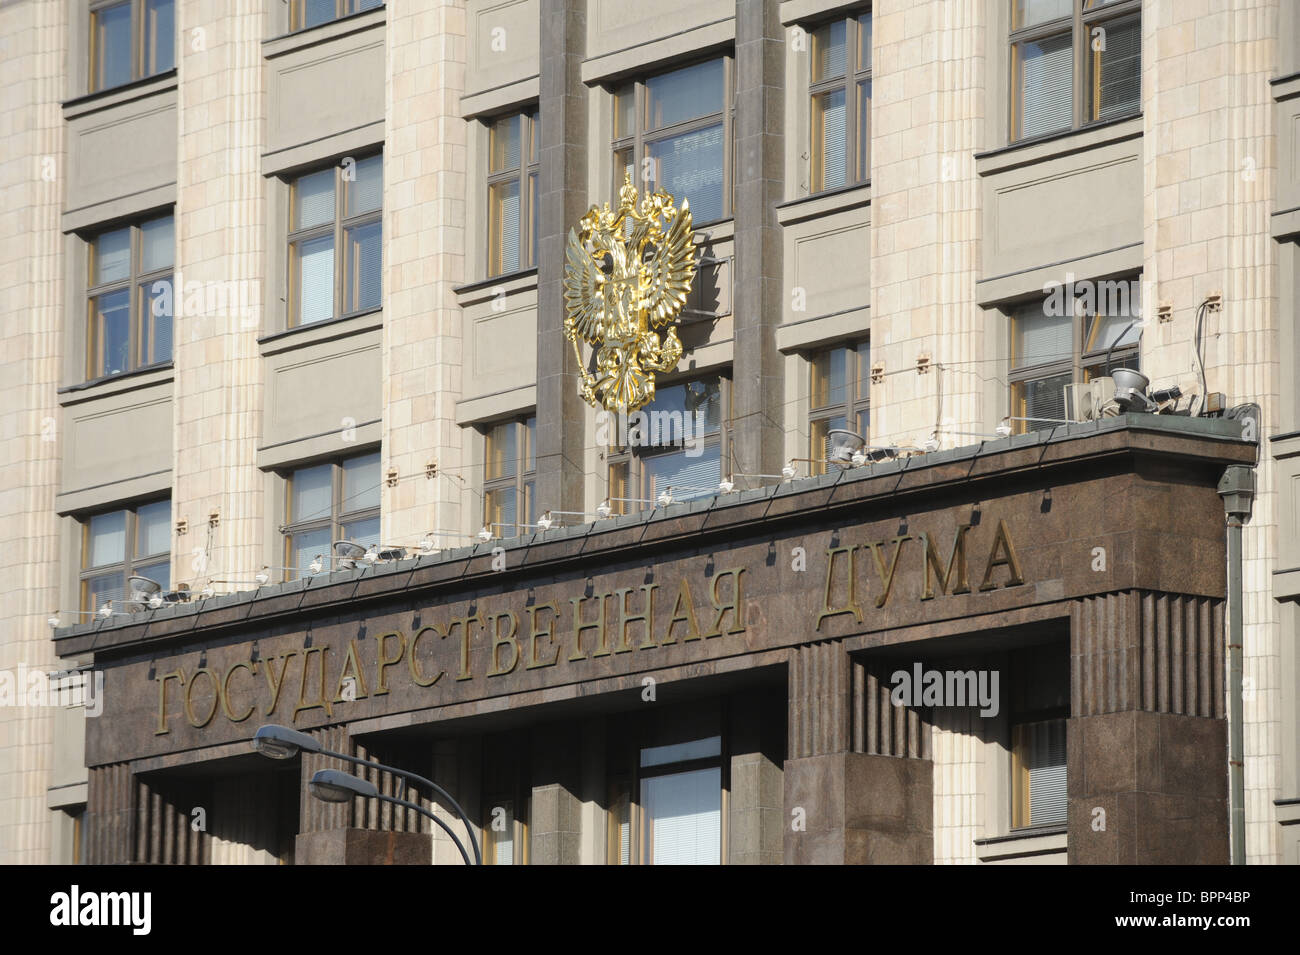 Russian Federation coat of arms appears at State Duma building - Stock Image